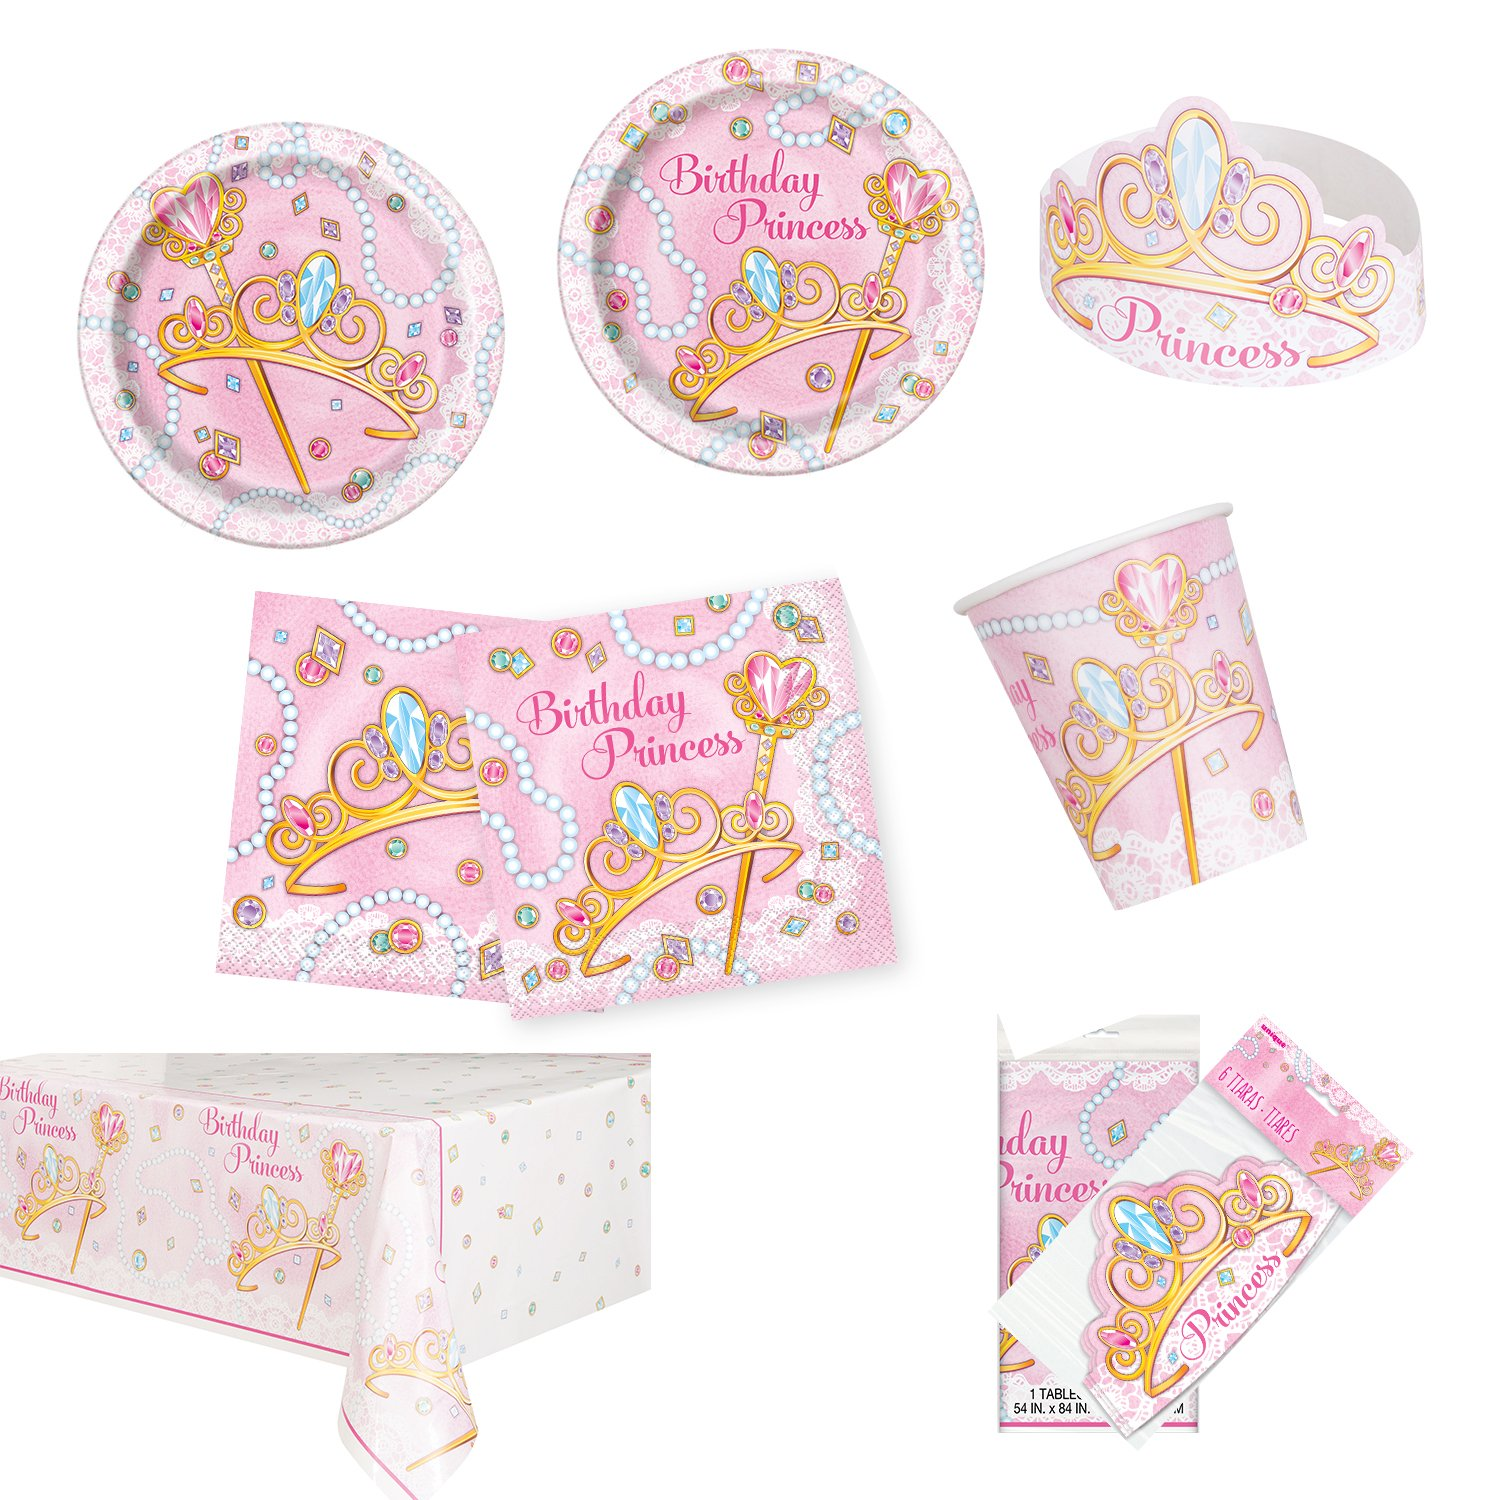 Unique Pink Princess Party Bundle | Luncheon & Beverage Napkins, Dinner & Dessert Plates, Table Cover, Cups, Tiaras | Great for Fairytale/Royal Birthday Themed Parties